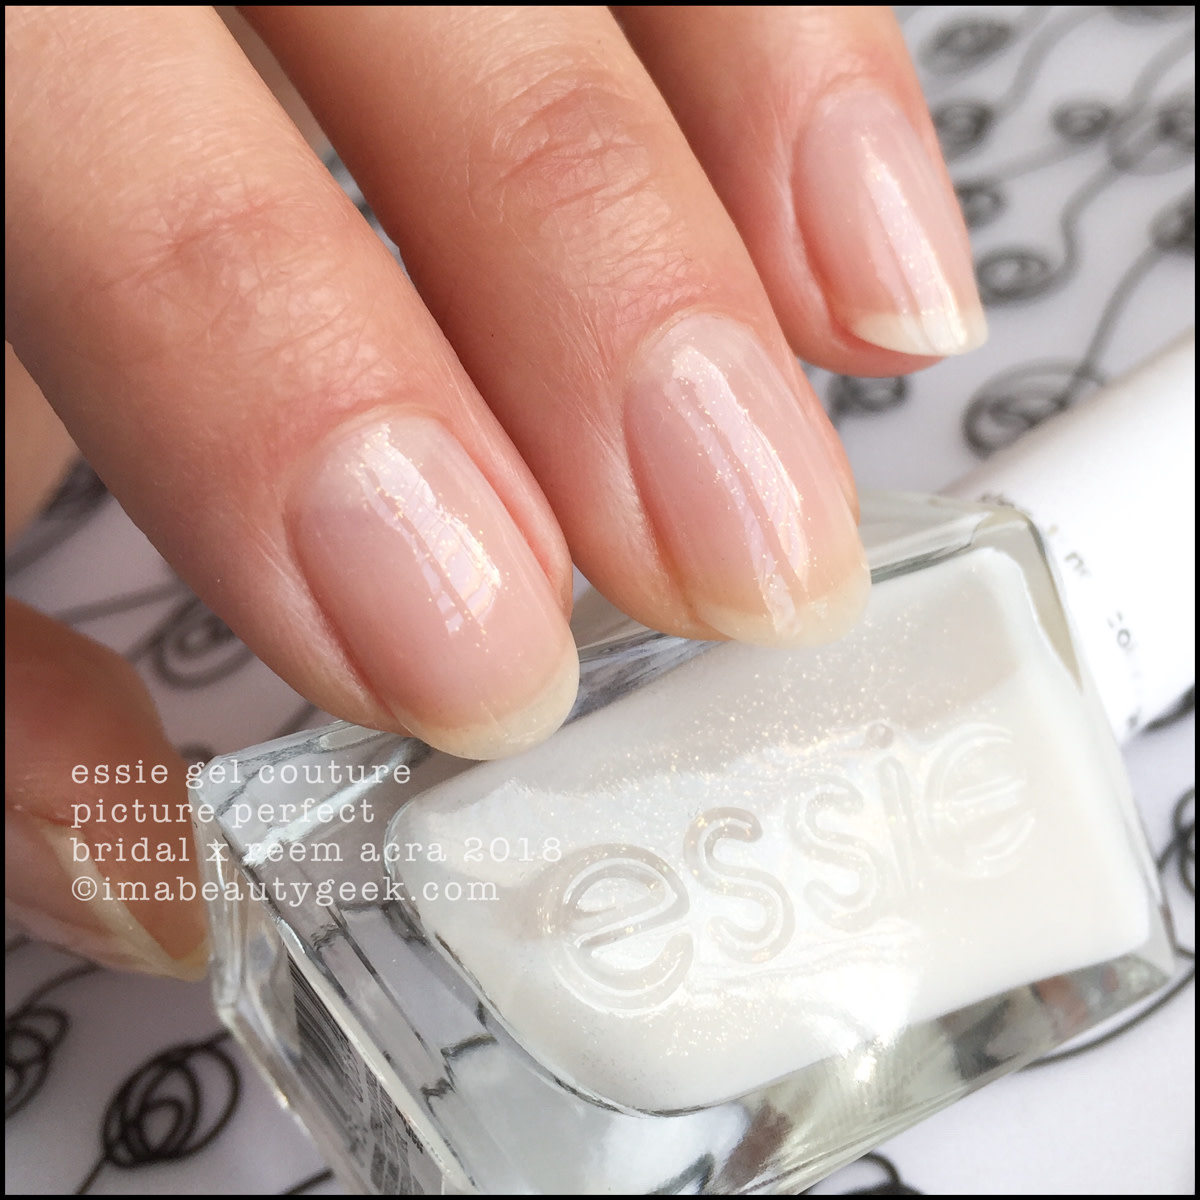 Essie Picture Perfect - Essie Bridal x Reem Acra Gel Couture 2018